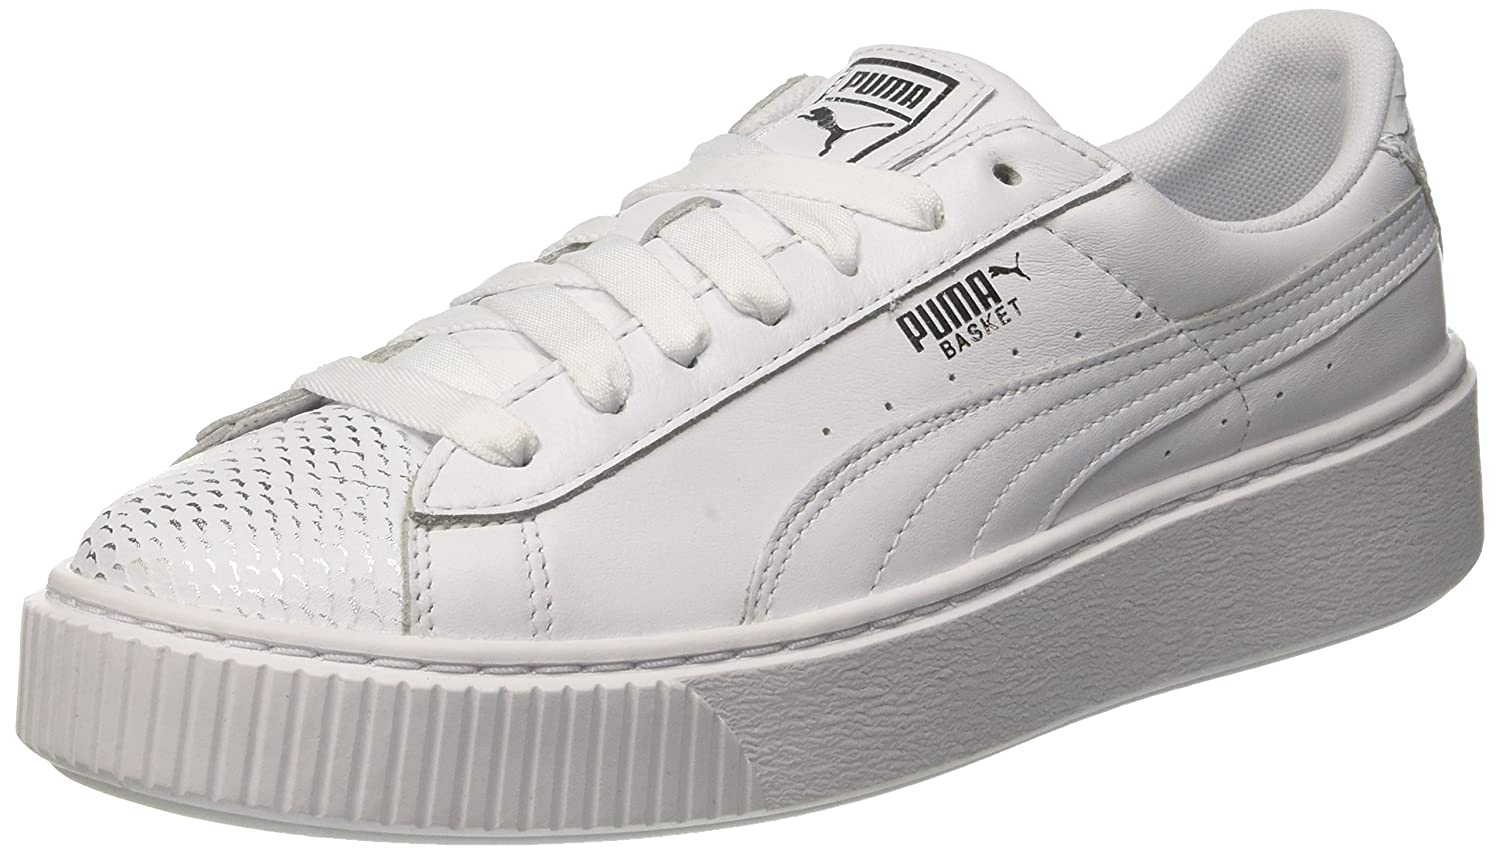 c28a74462cf1 Puma Women s Basket Platform Ocean WN s Silver White Sneakers-4 UK India  (37 EU) (4059505009632)  Buy Online at Low Prices in India - Amazon.in